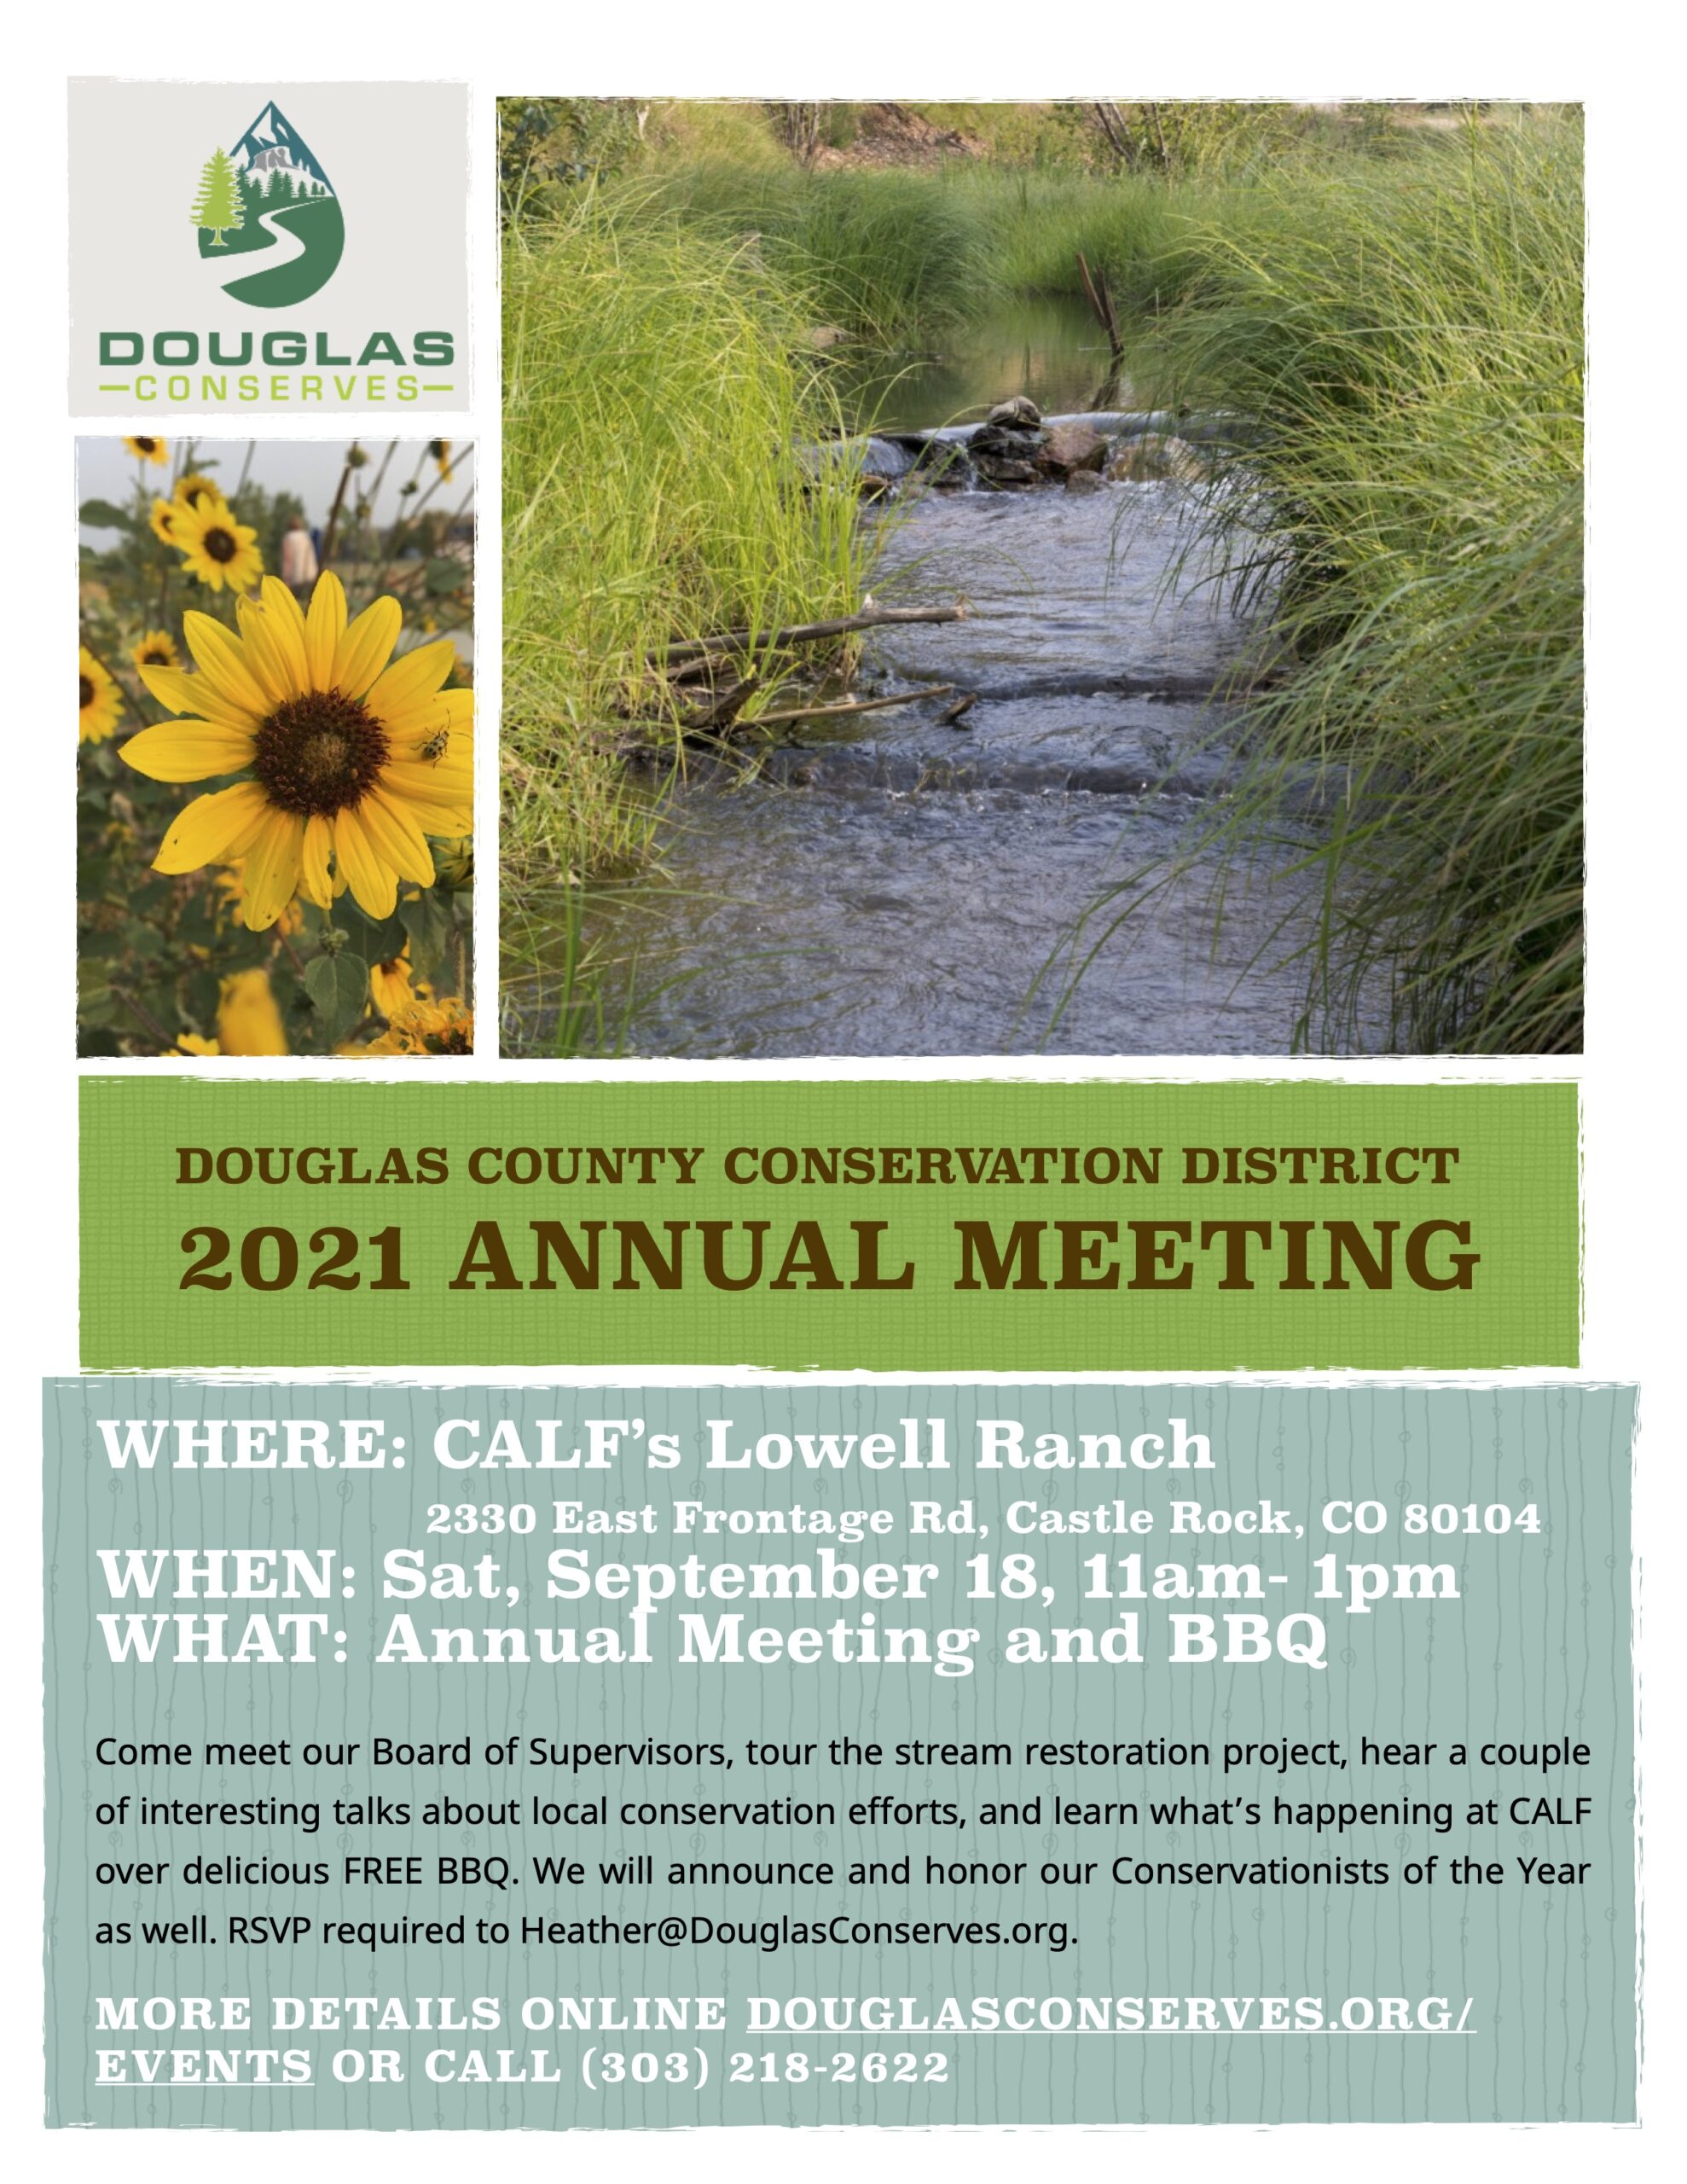 2021 Annual Meeting and BBQ